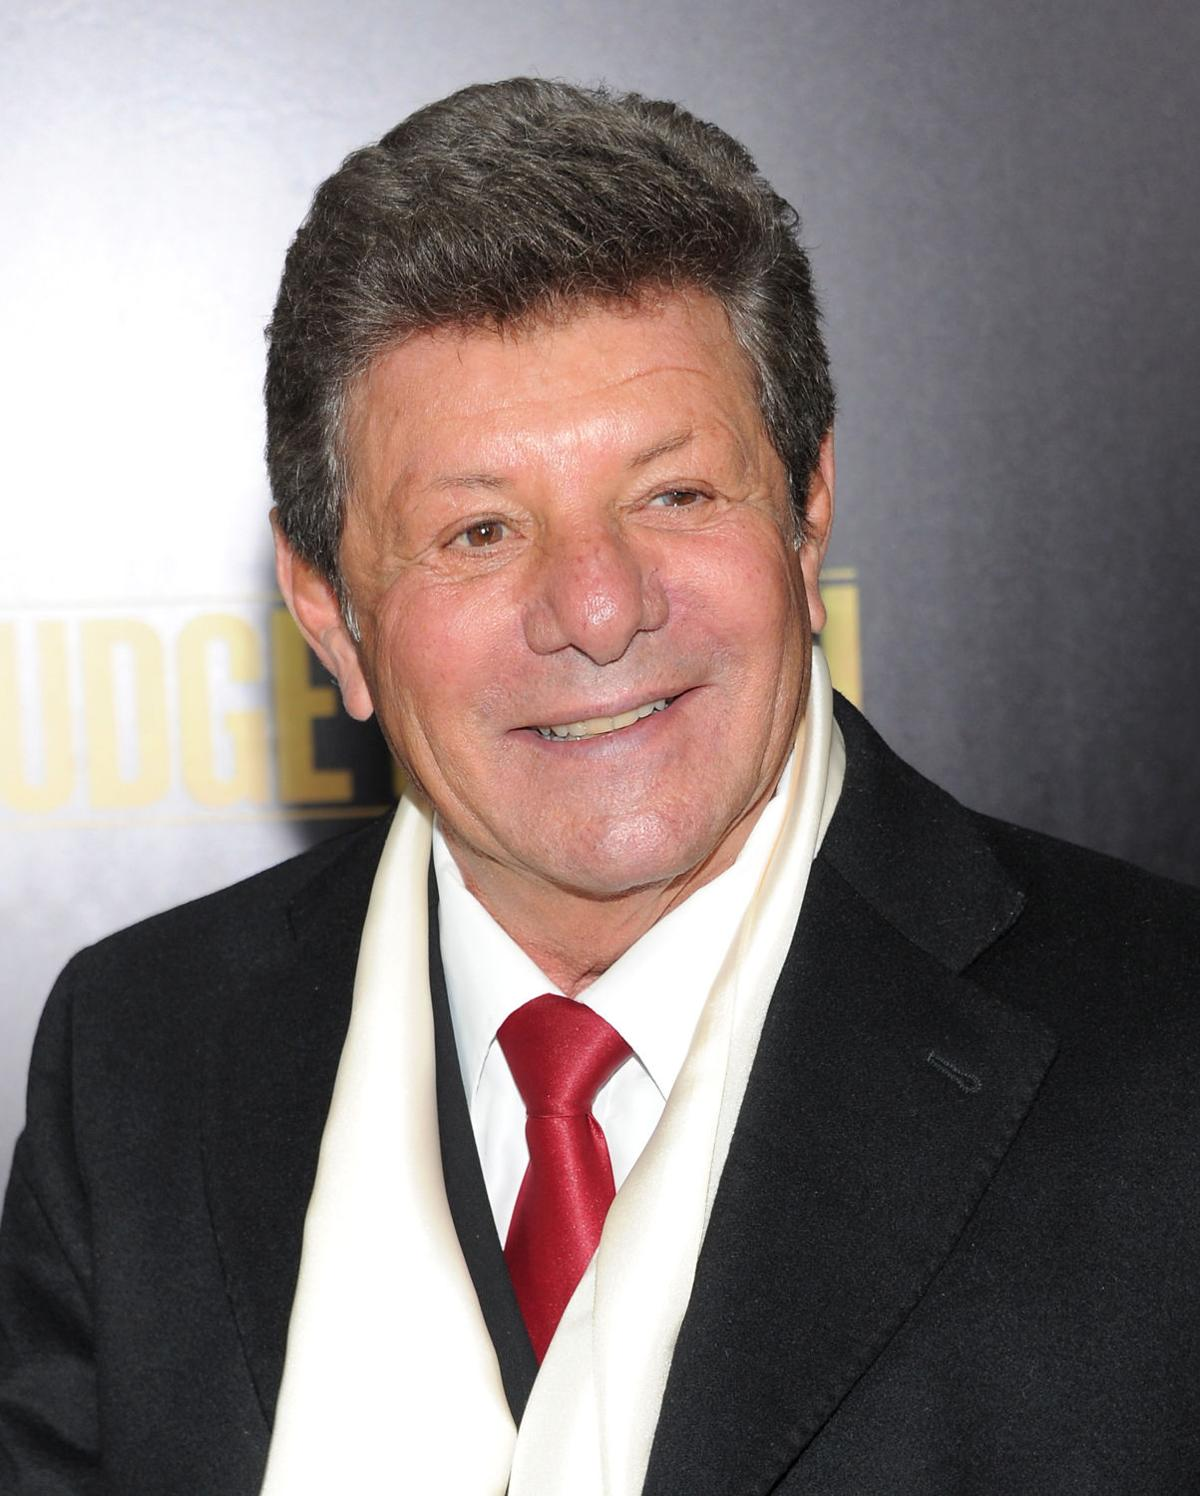 Frankie Avalon at the 2013 premiere of Grudge Match